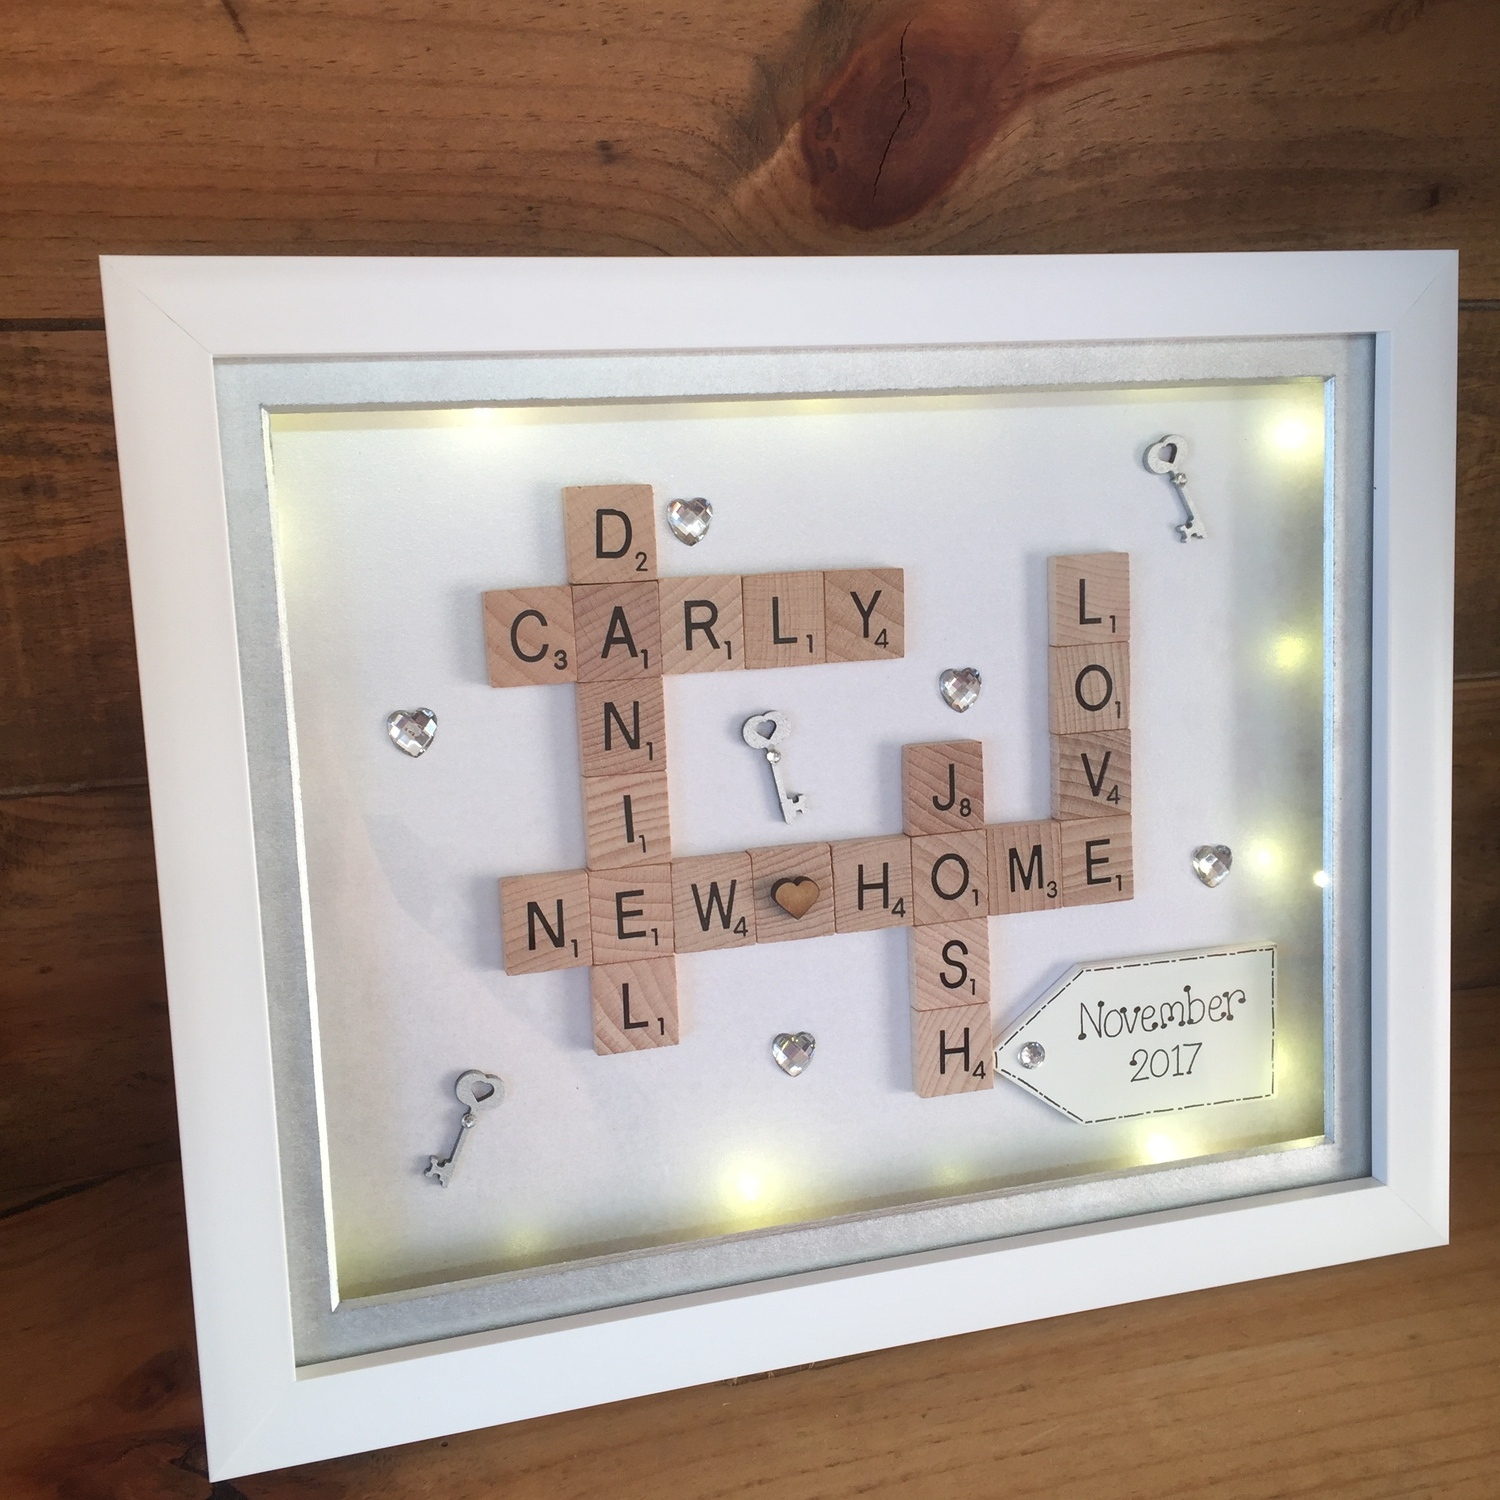 "LED New home"" scrabble word art 